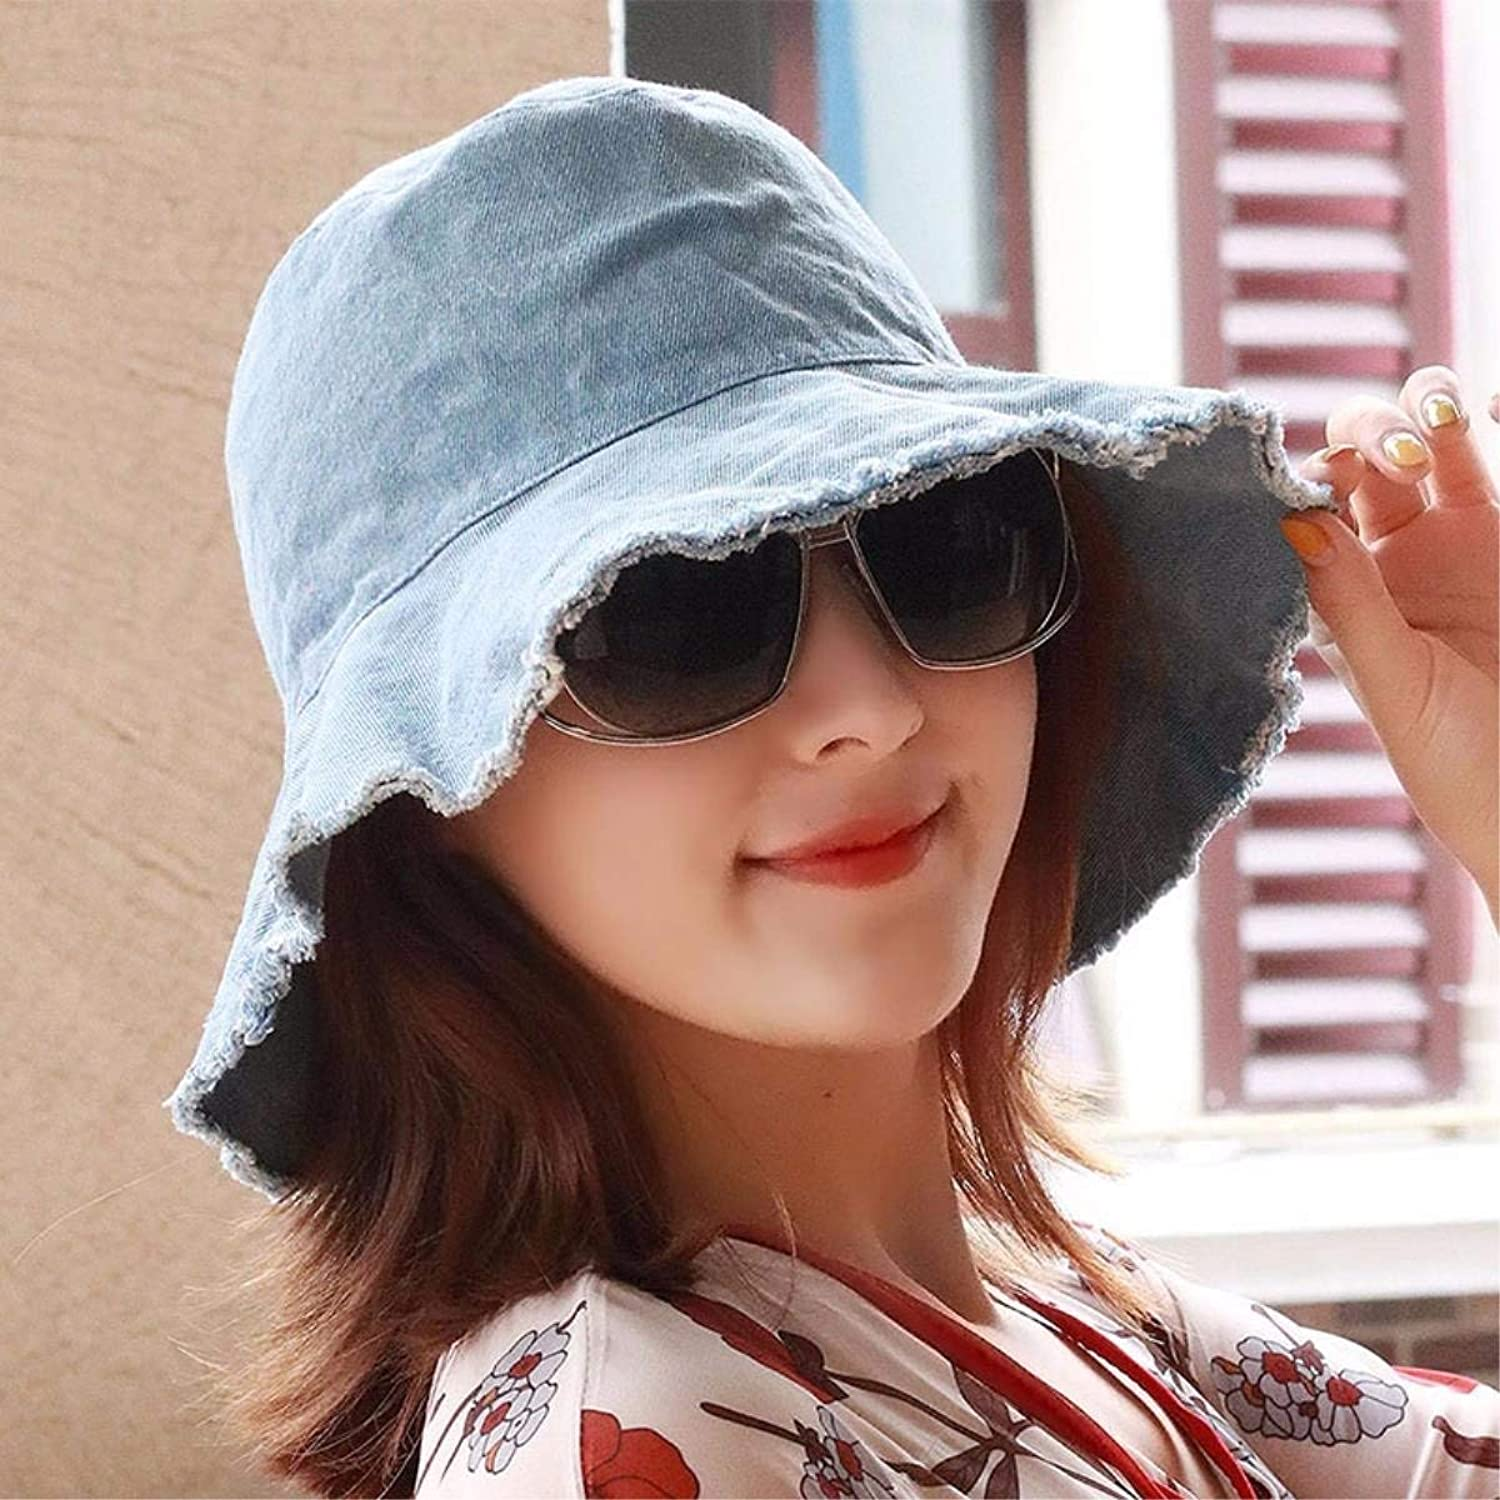 Dingkun The spring and summer arts small fresh teargender couples visor sun hat fisherman's cap basin cap cotton hat